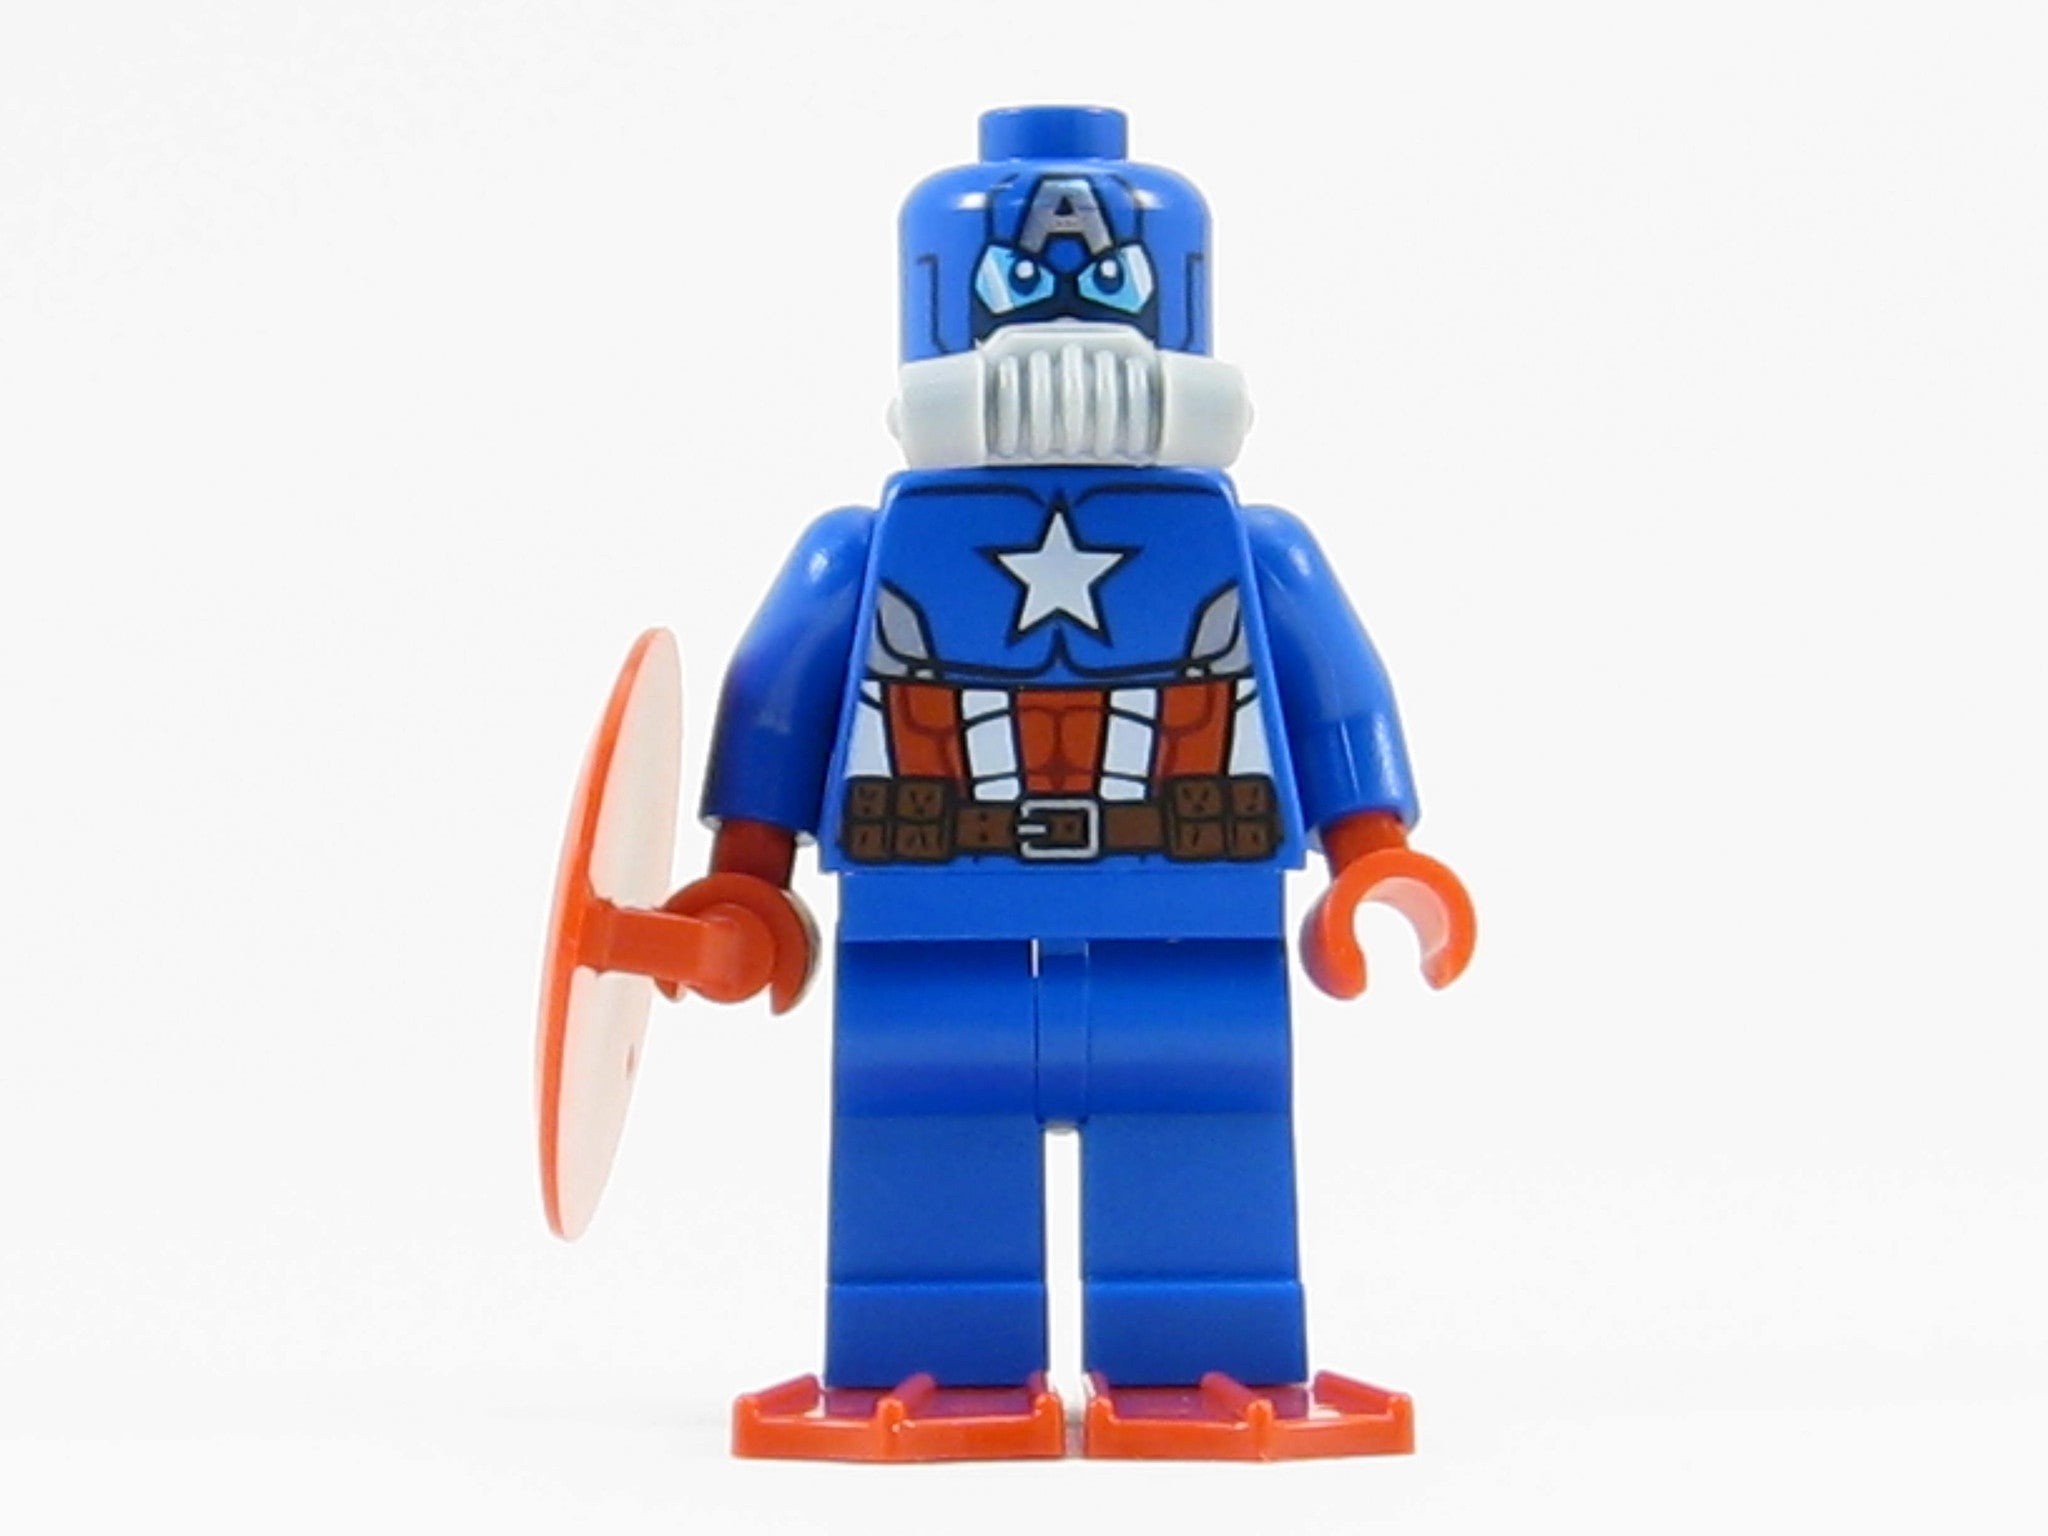 LEGO Marvel Super Heroes Scuba Captain America Minifigure Shield Red Flippers